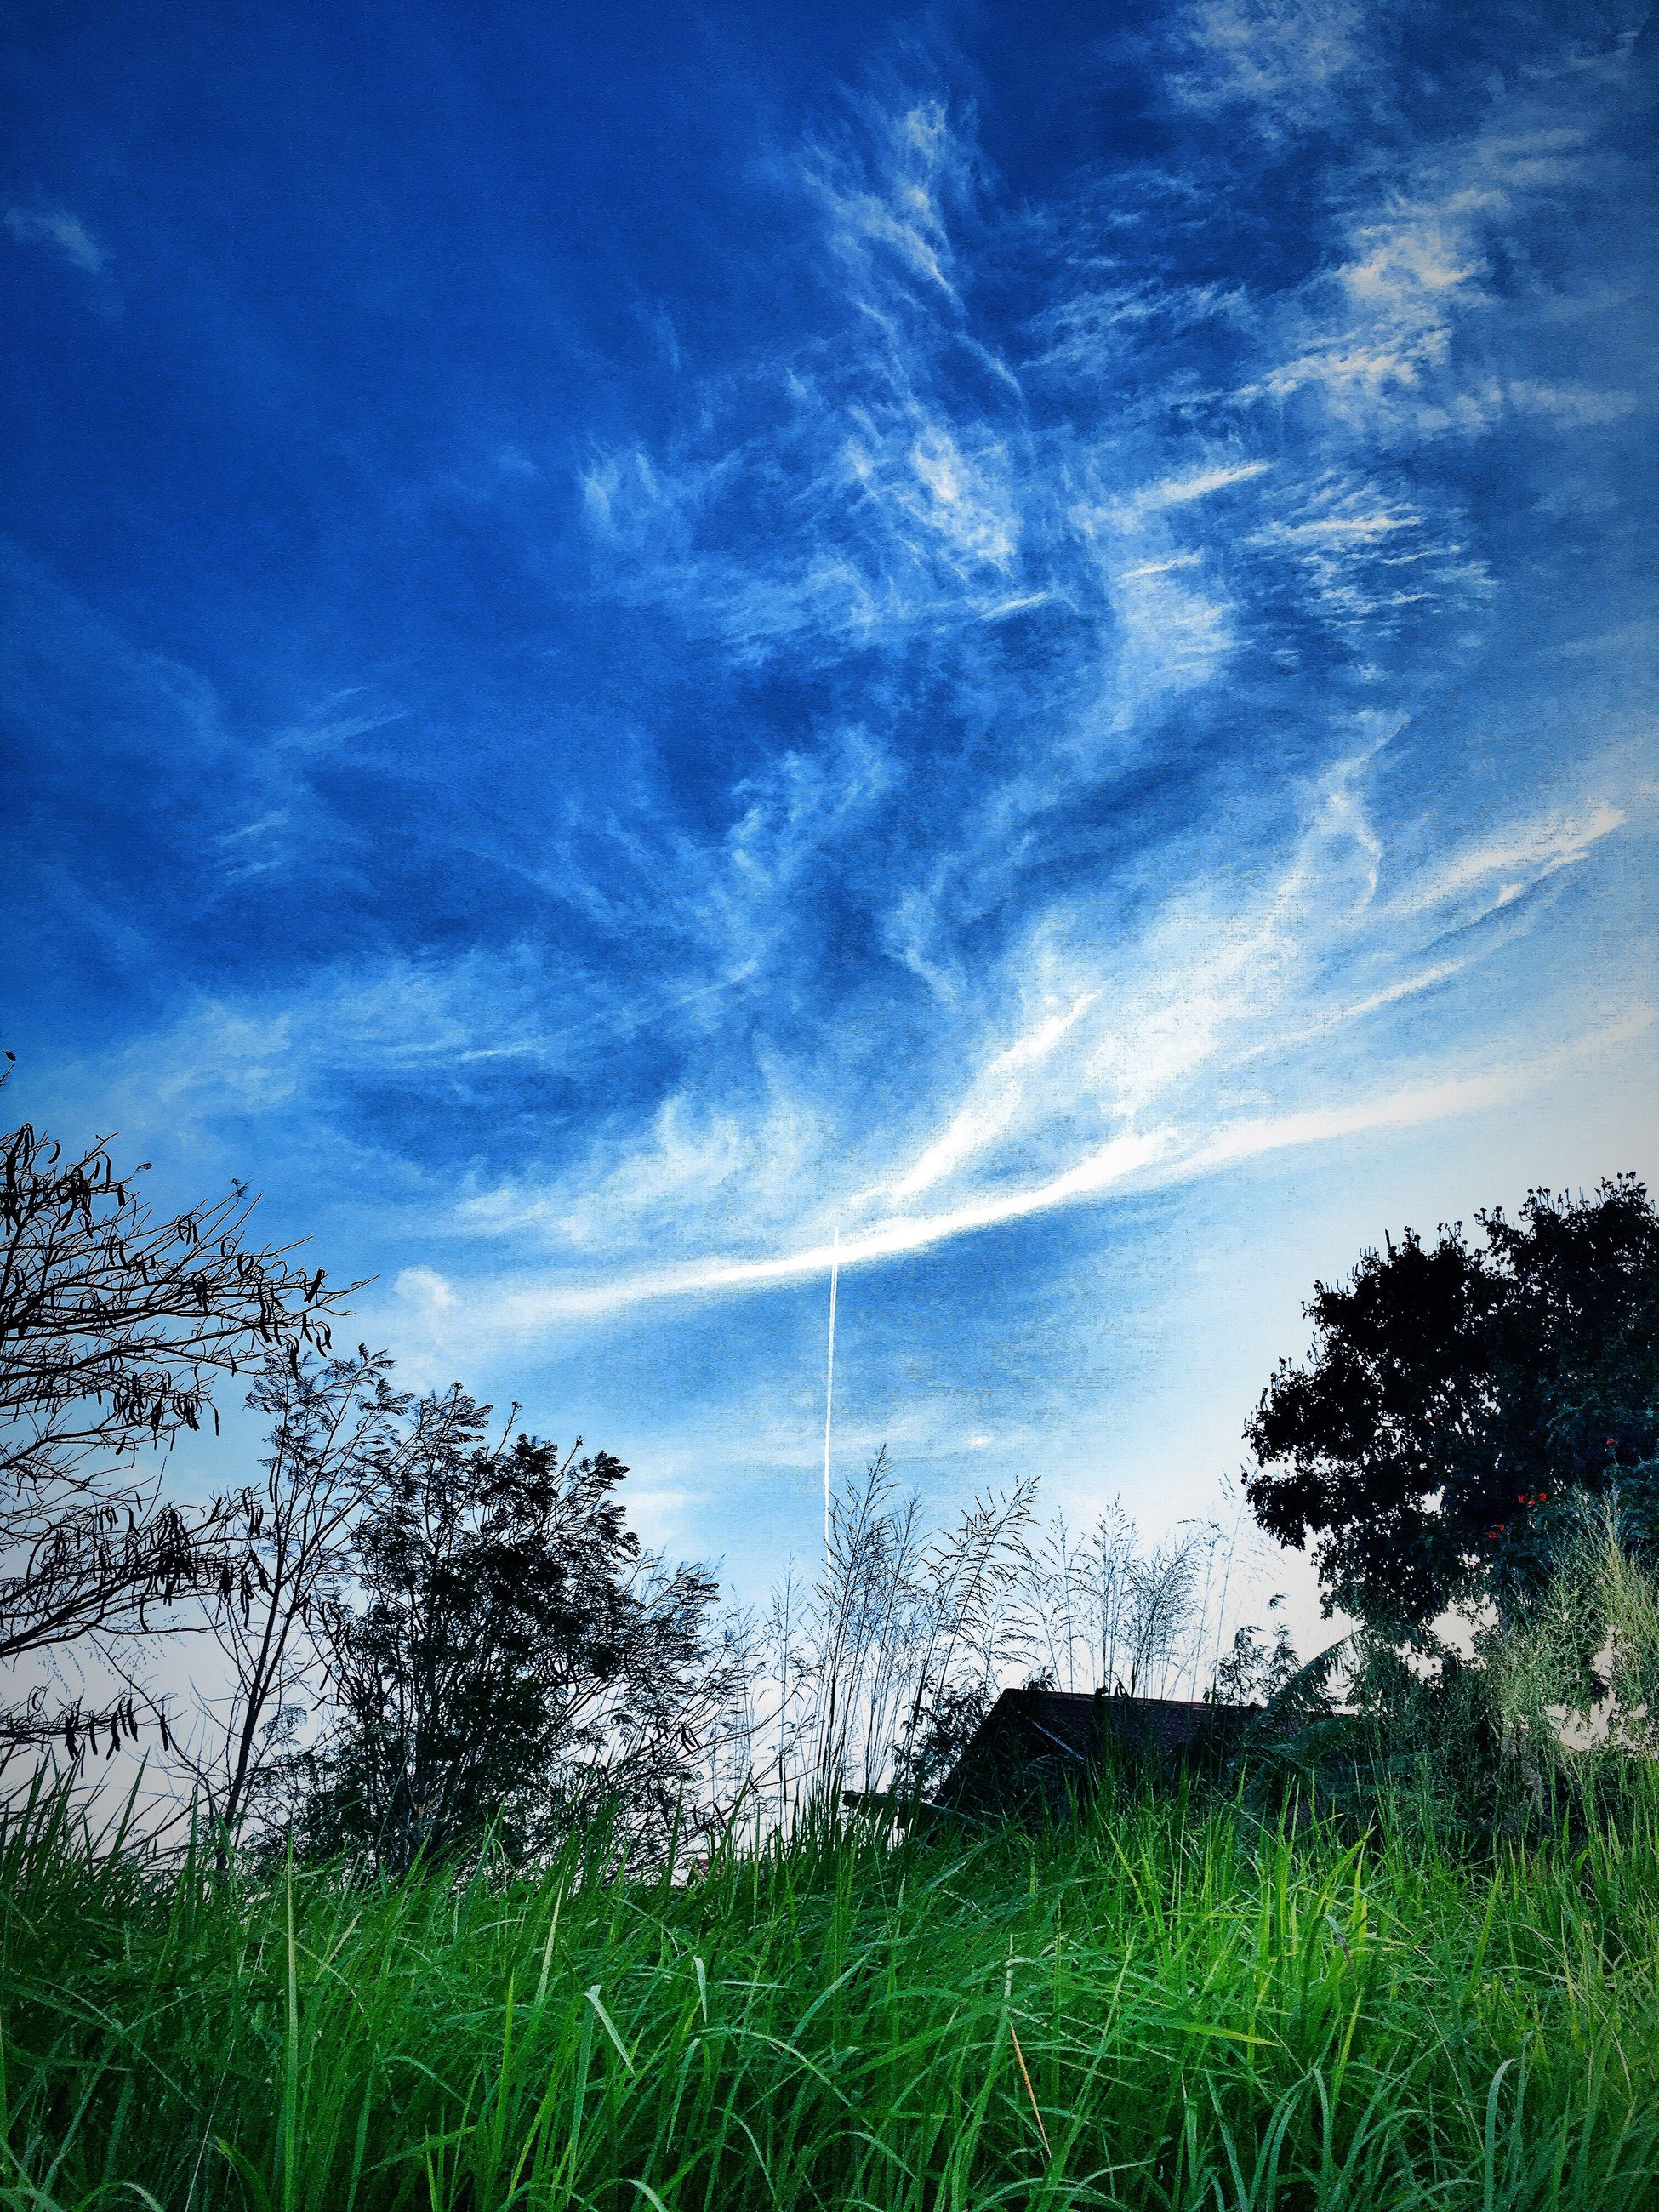 sky, growth, nature, scenics, beauty in nature, tranquility, no people, tree, outdoors, backgrounds, day, galaxy, astronomy